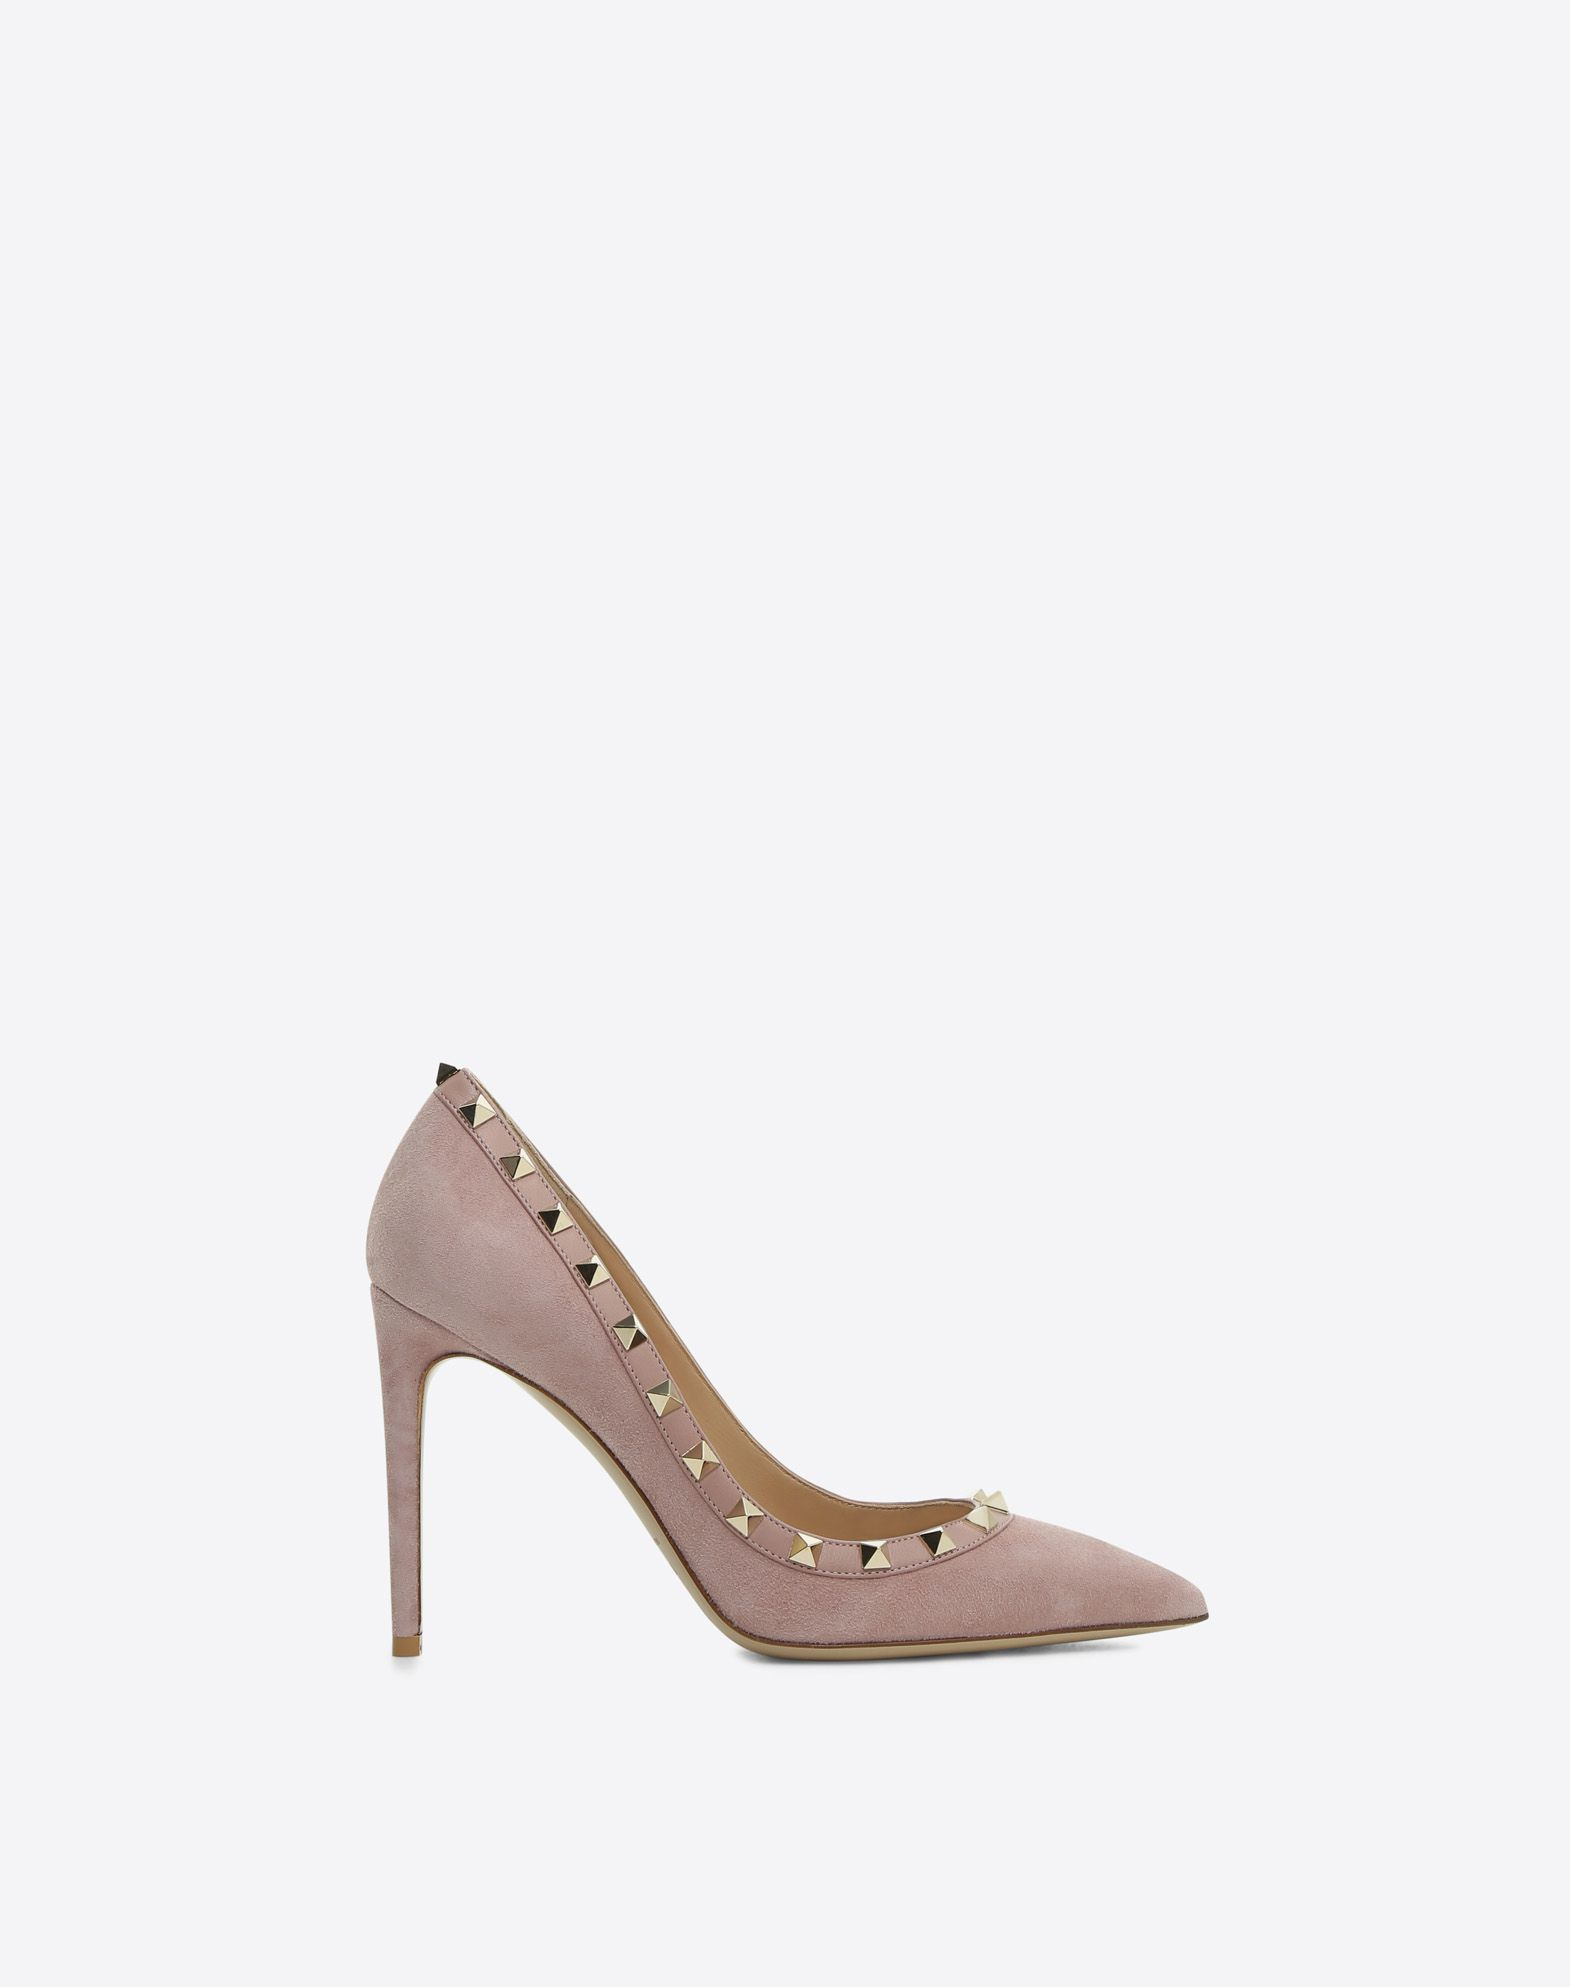 VALENTINO Covered heel Solid color Spike heel Suede effect Studs Narrow toeline Leather lining Leather sole  45378546kk